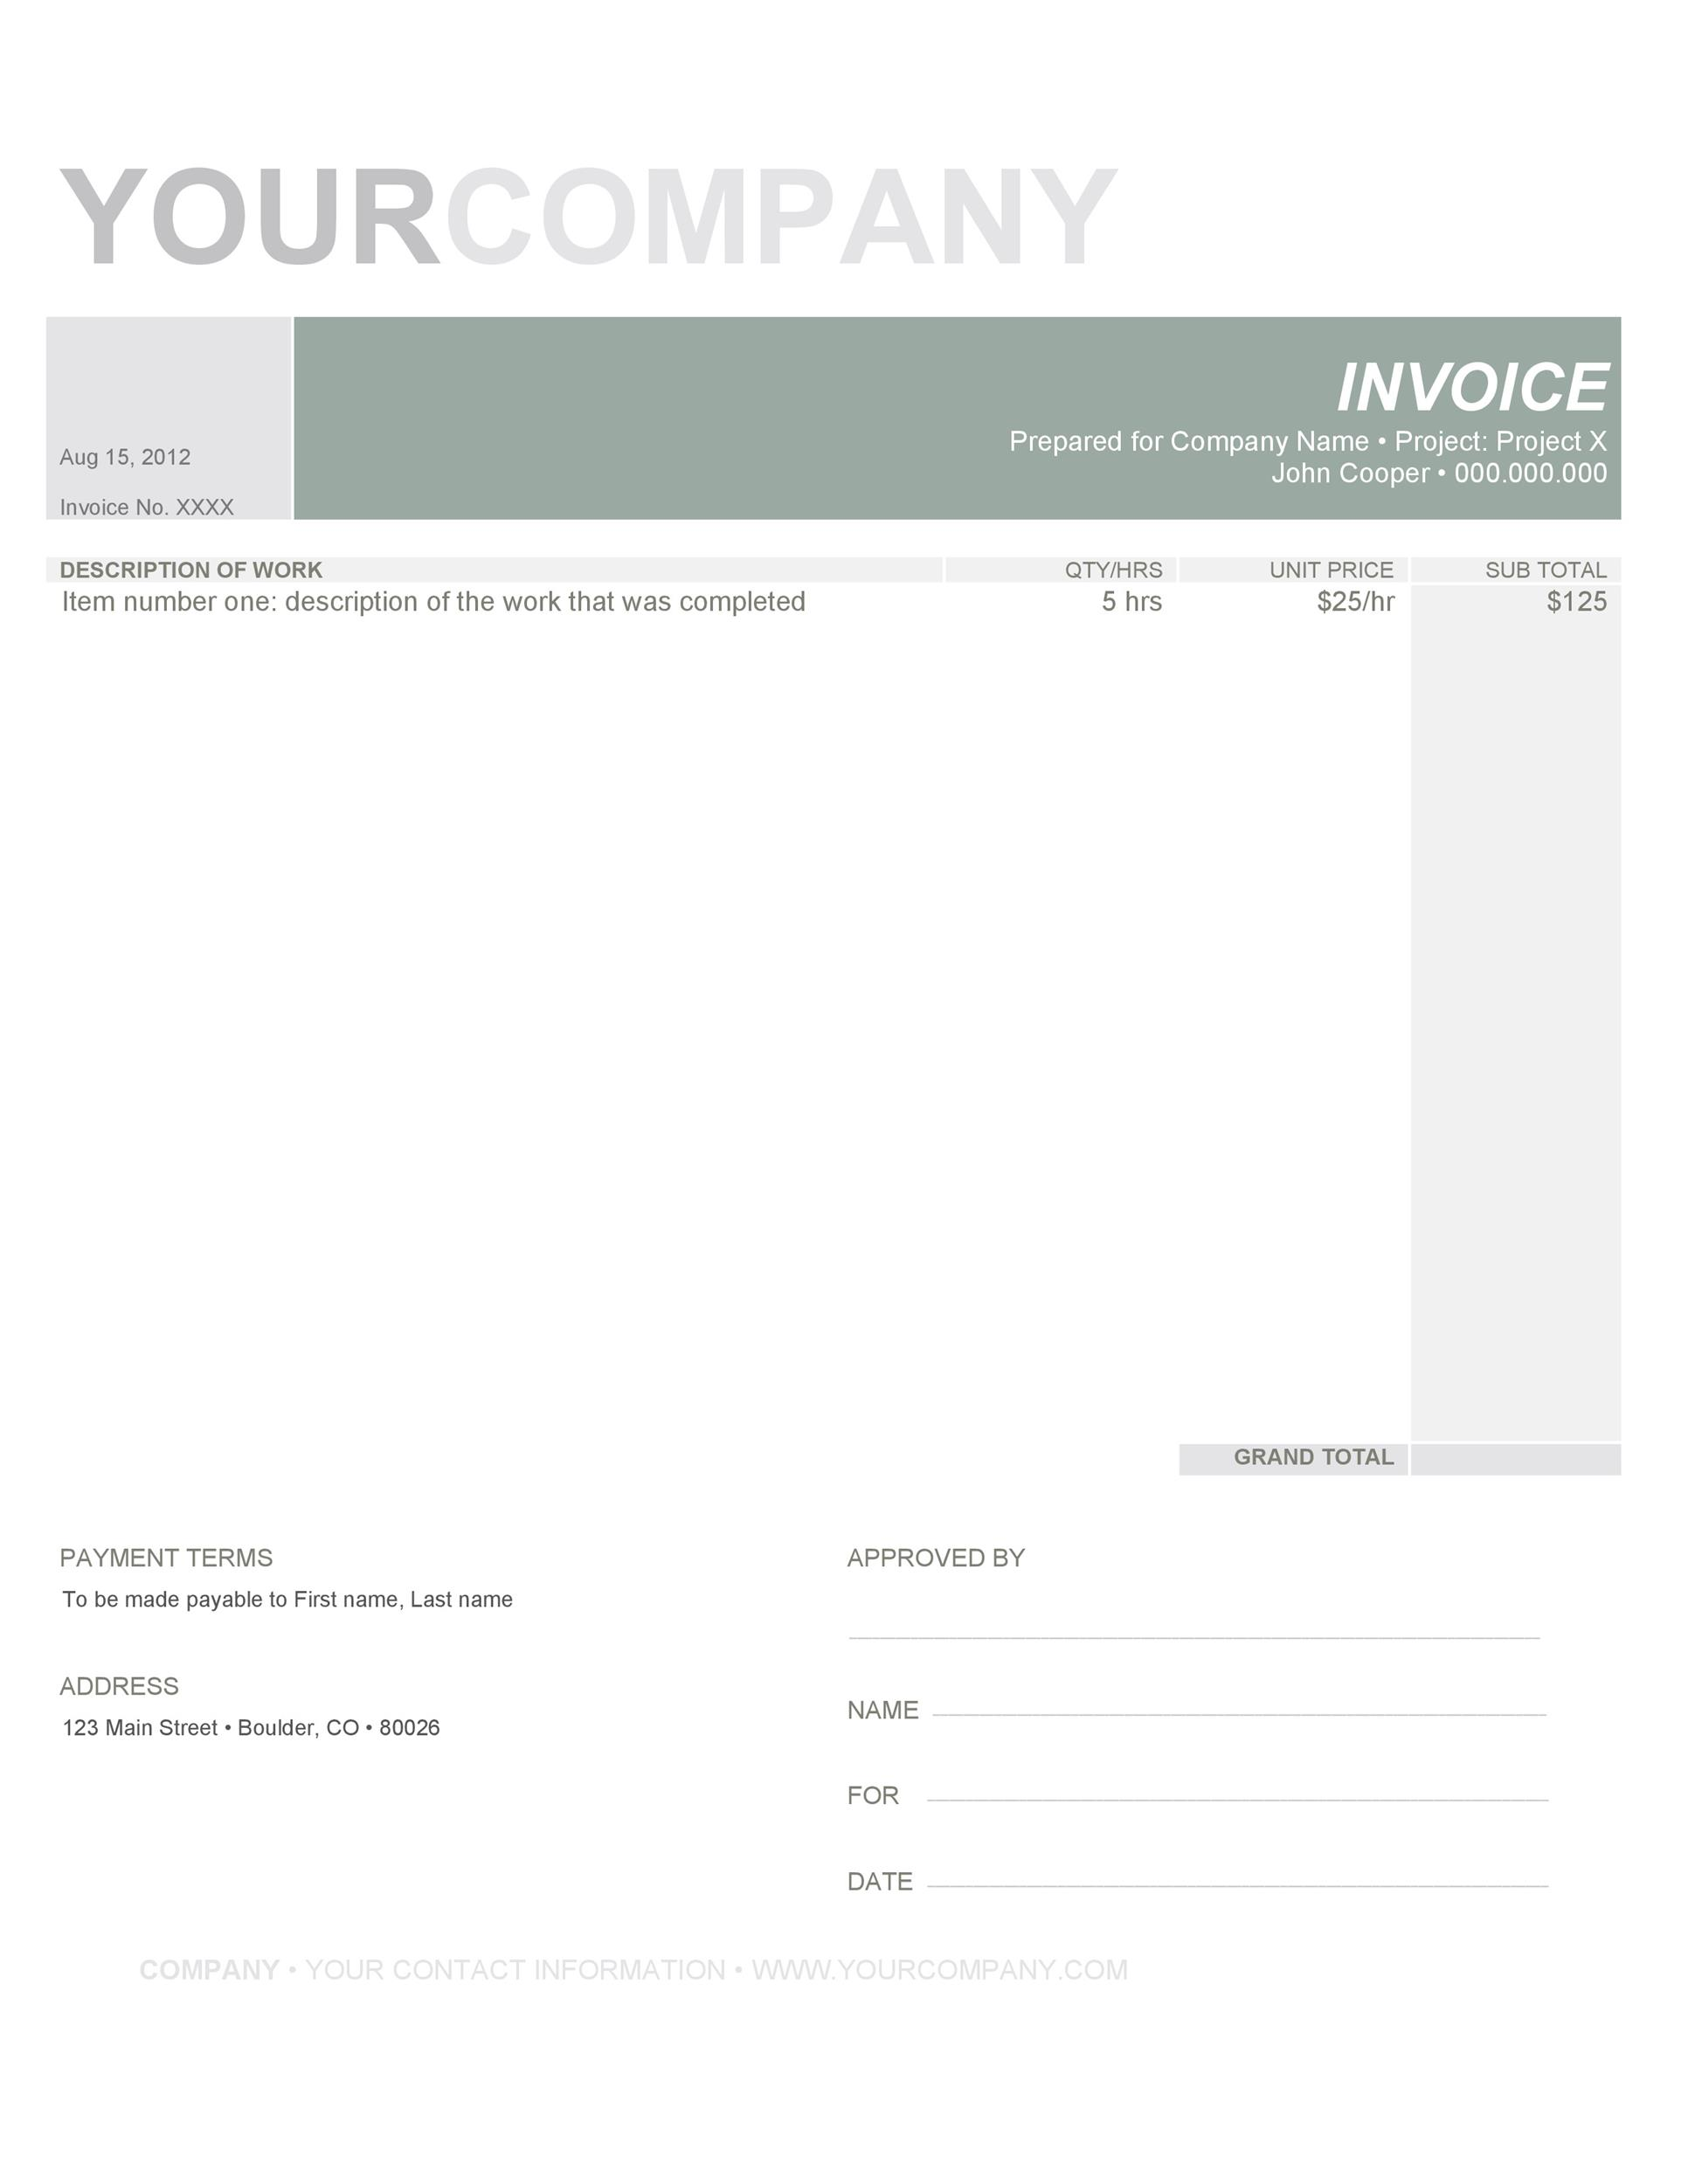 Air Canada Baggage Receipt  Invoice Templates Blank Commercial Pdf Word Excel Thermal Receipt Printer Driver Word with How To Make Fake Receipts Pdf Invoice Template  Cash Receipt Template Free Word